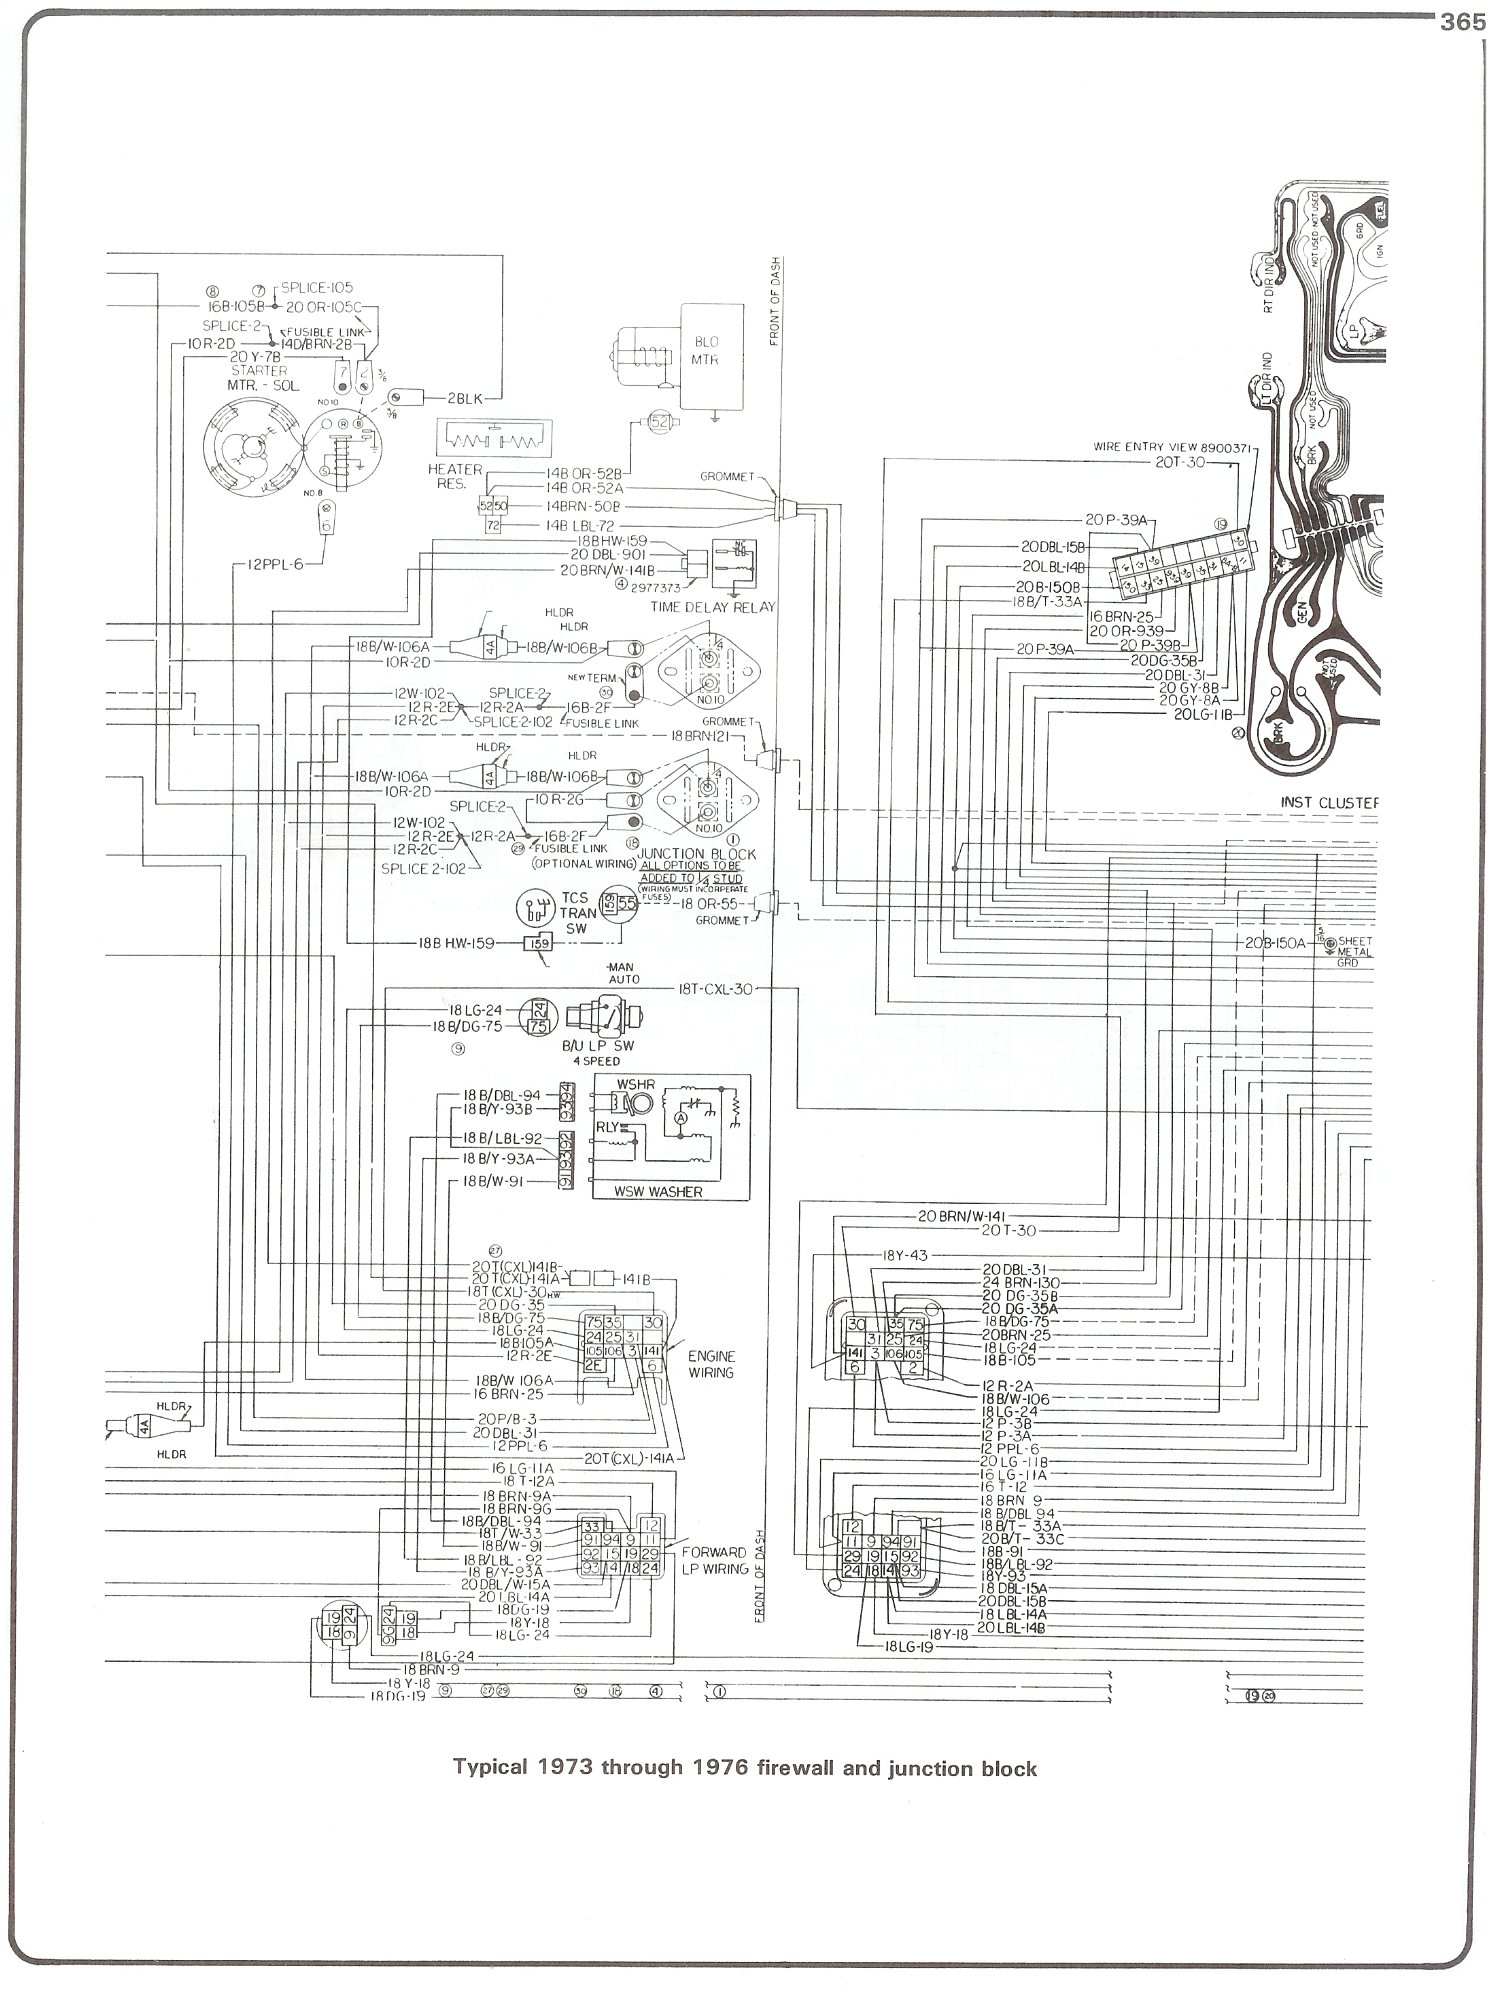 1979 Gmc Truck Wiring - Wiring Diagram Detailed - 1979 Chevy Truck Wiring Diagram